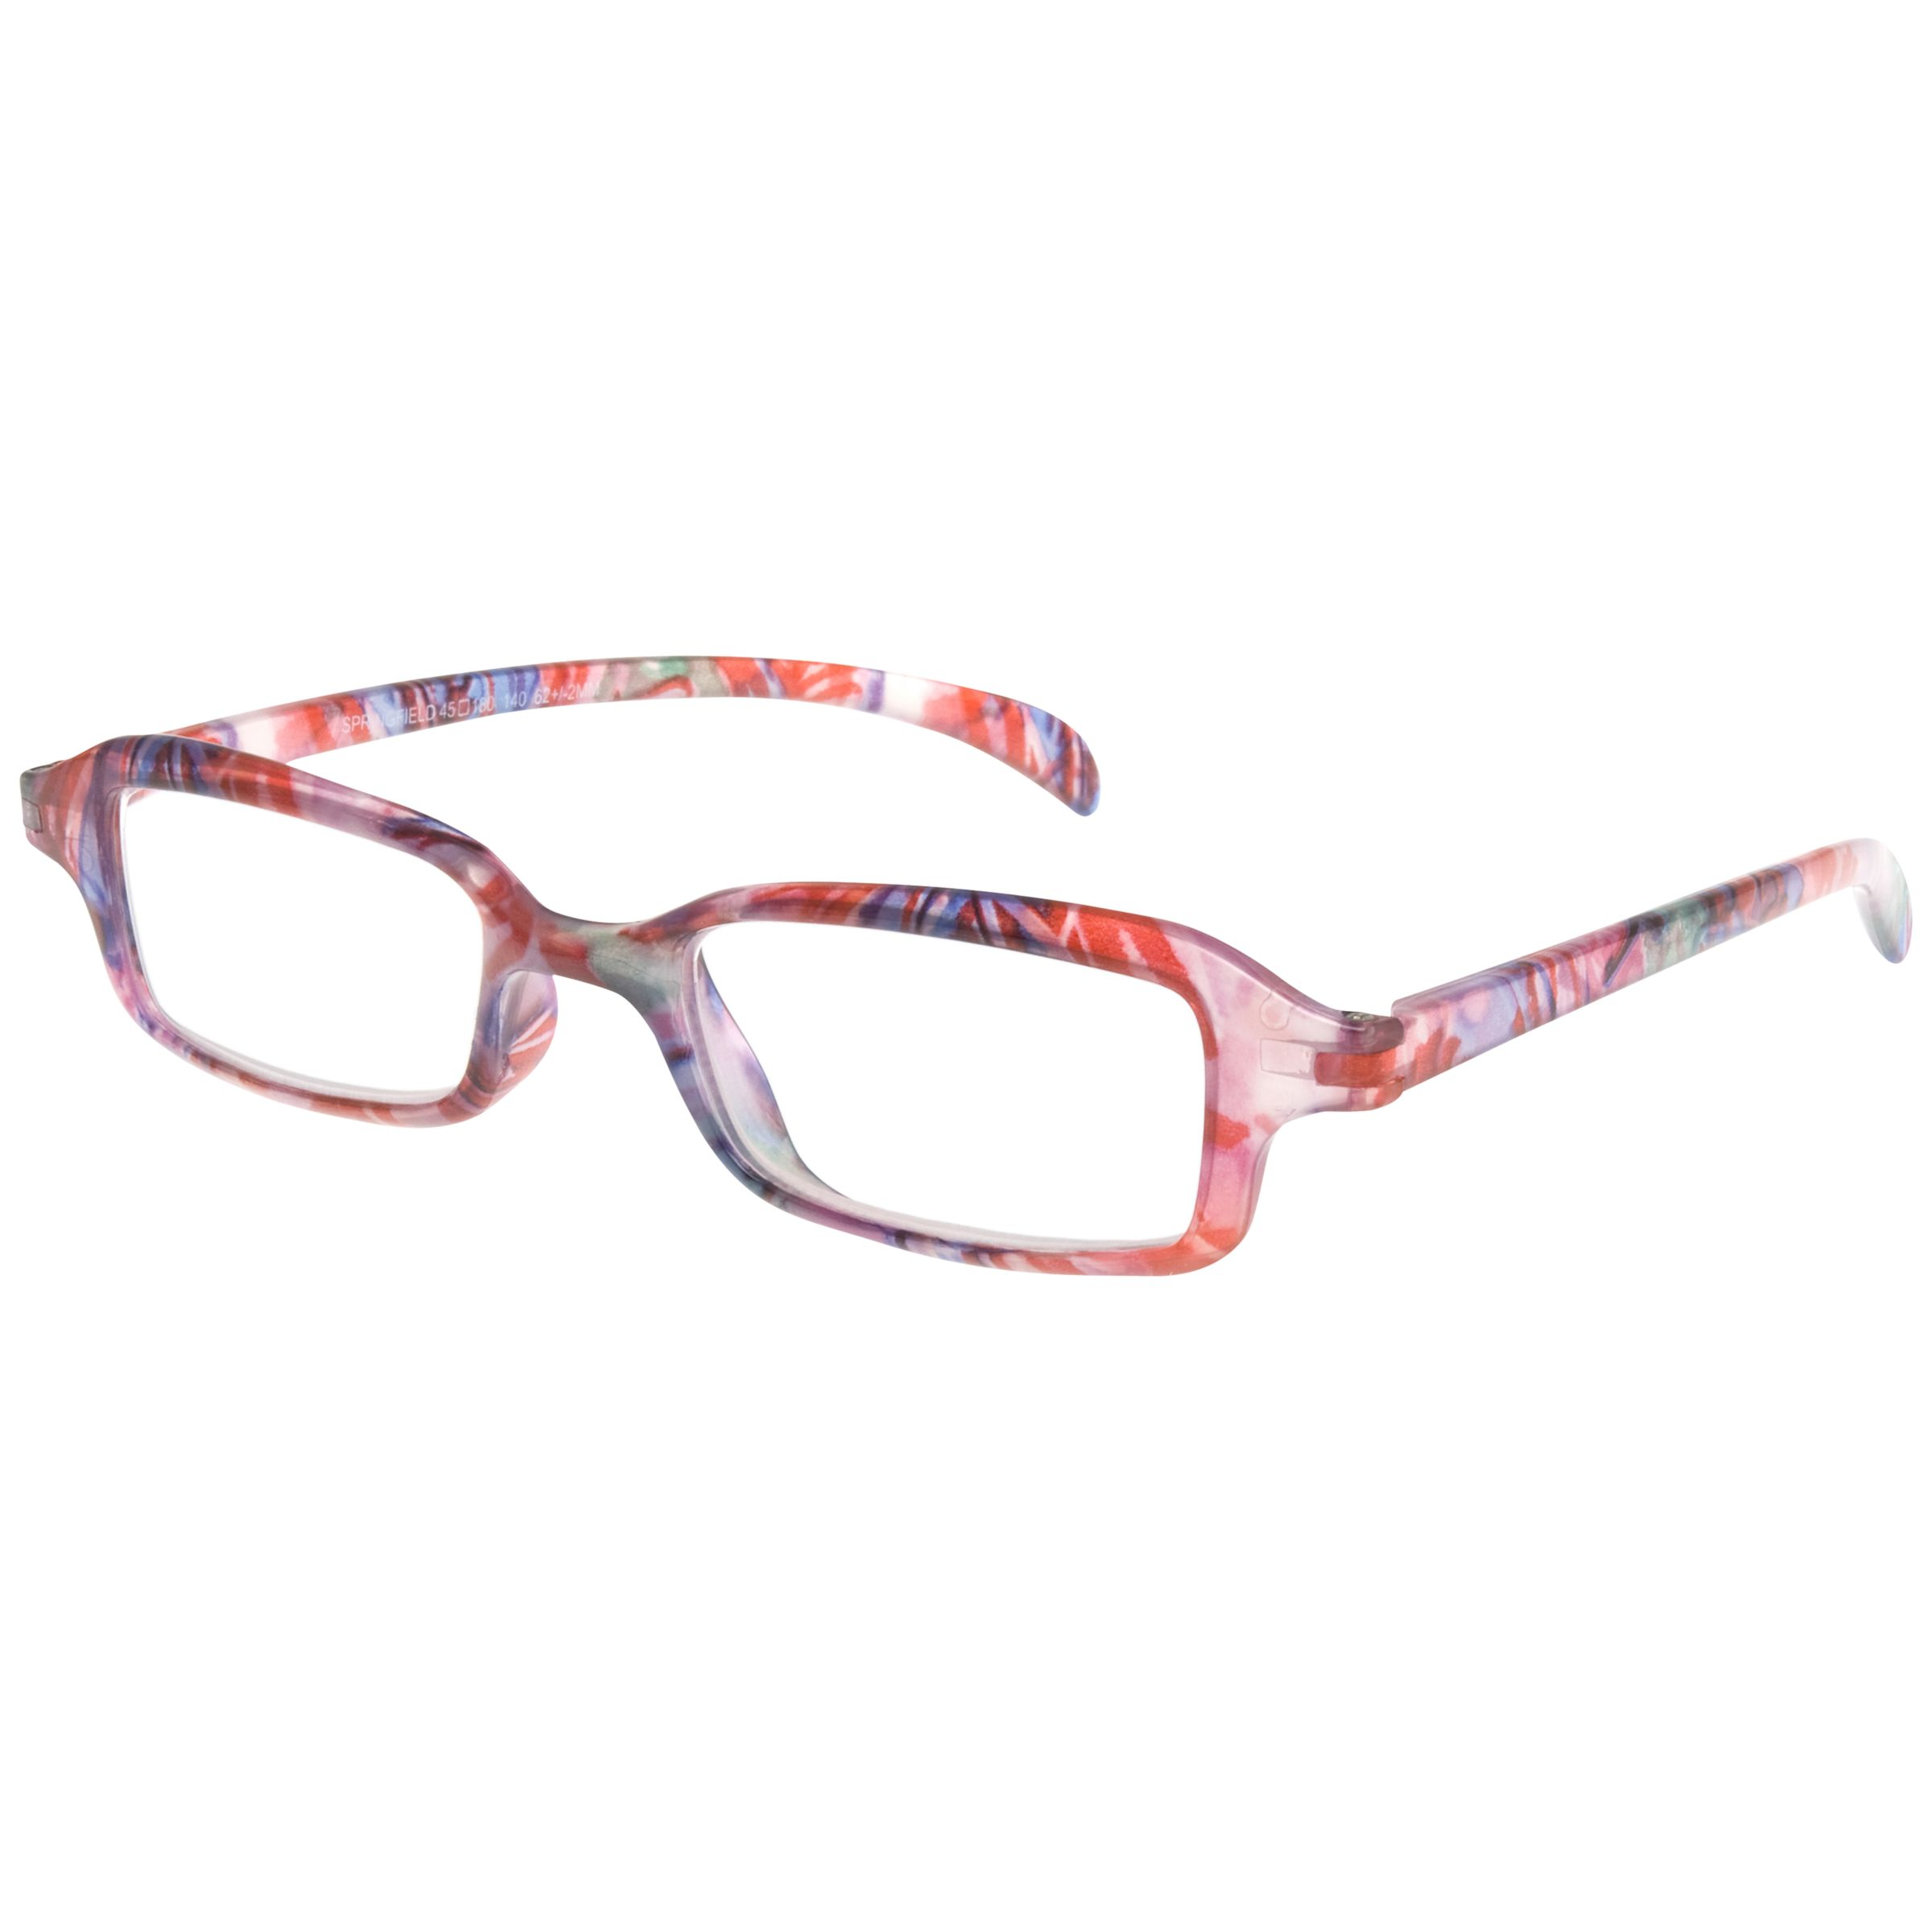 Magnif Eyes Magnif Eyes Ready Readers Springfield Glasses, Pink